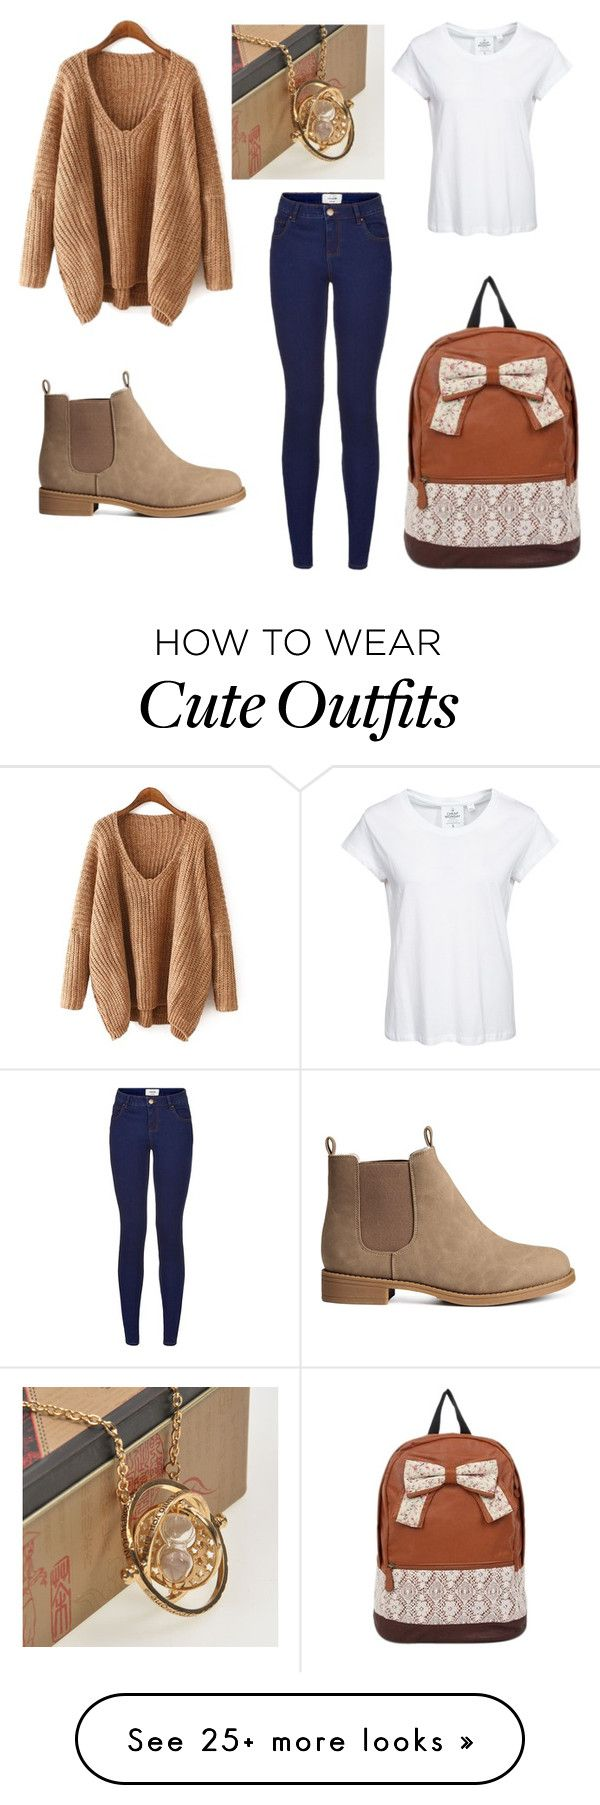 """Time Turner Outfit"" by hashtagemojis on Polyvore featuring H&M, Cheap Monday and Retrò"